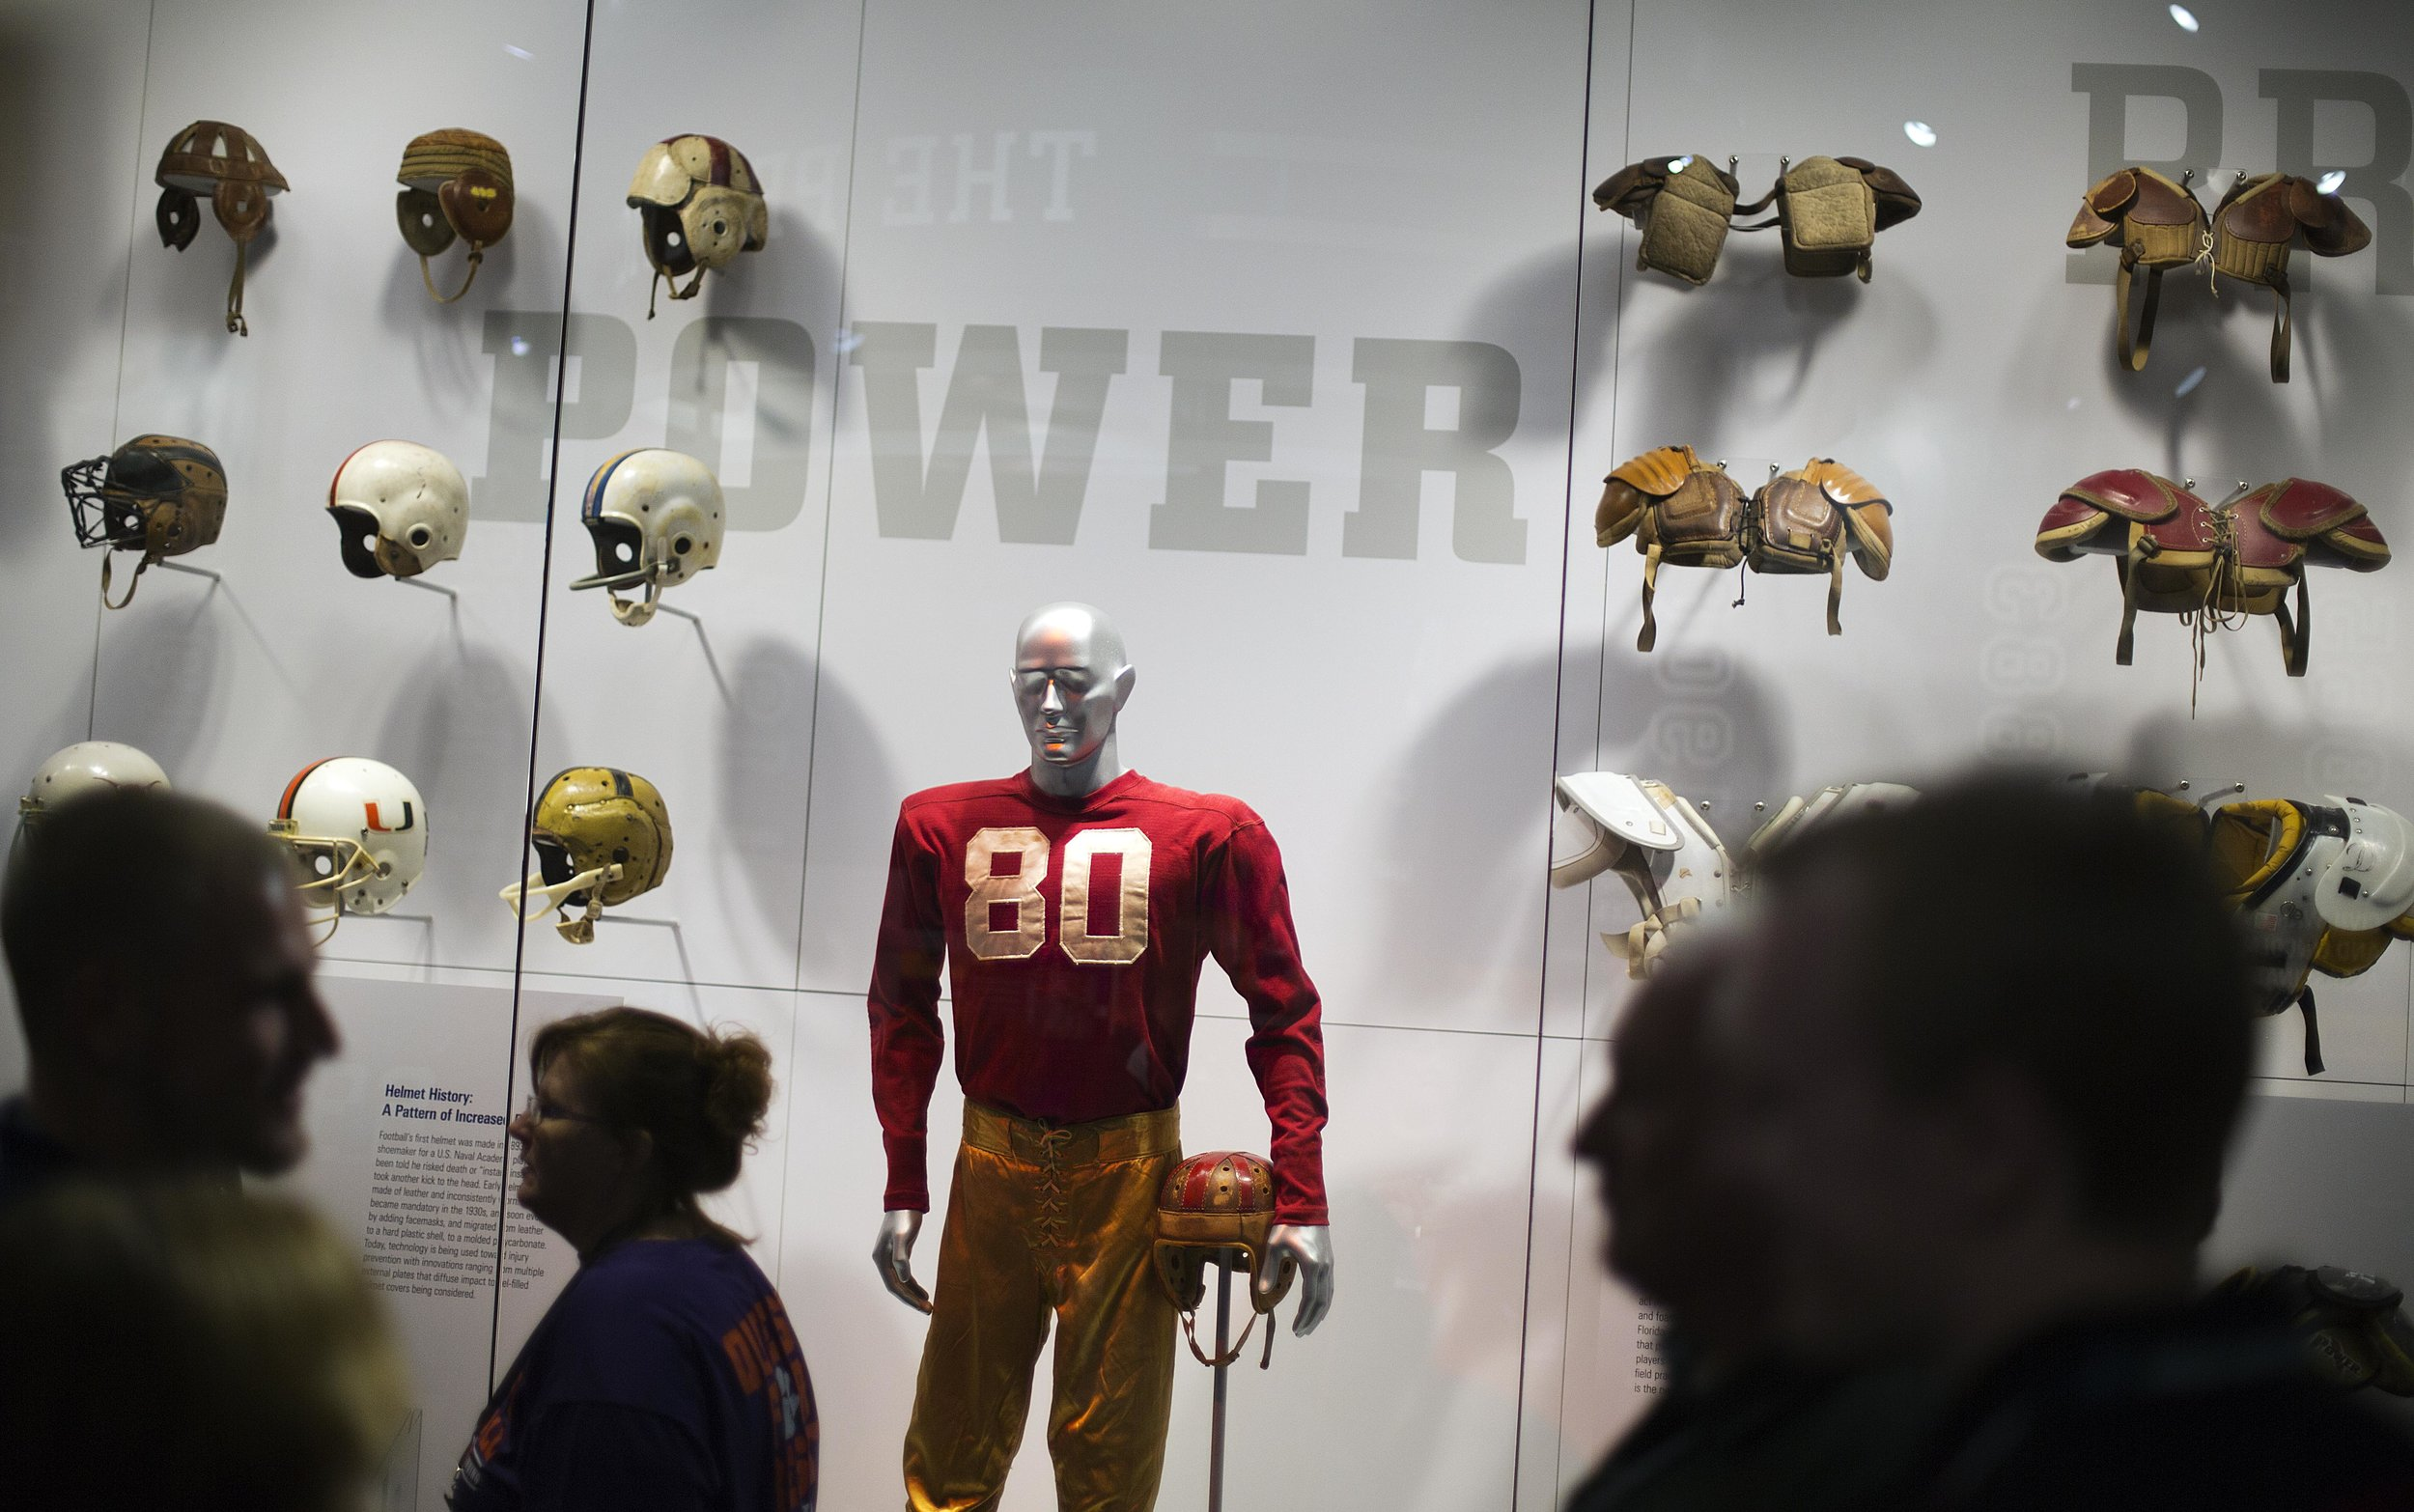 """An exhibit displaying the evolution of protective equipment is viewed by visitors during a tour at the College Football Hall of Fame, Wednesday, Aug. 13, 2014, in Atlanta. One hundred contest winners who wrote an essay detailing their love of college football were selected to stay with a guest overnight in Atlanta's College Football Hall of Fame before its grand opening and win a year's supply of Chick-fil-A. The crowd of 200 who came from as far away as Hawaii were among the first to experience the College Football Hall of Fame and Chick-fil-A Fan experience before it opens to the public on Aug. 23. After touring the exhibits guest were served dinner on the football field before pitching their tents on the turf and settling in for the night as college football themed movies such as """"Rudy""""were played on the jumbotron. The hall was previously located in South Bend, Indiana, but was plagued by poor attendance. (AP Photo/David Goldman)"""